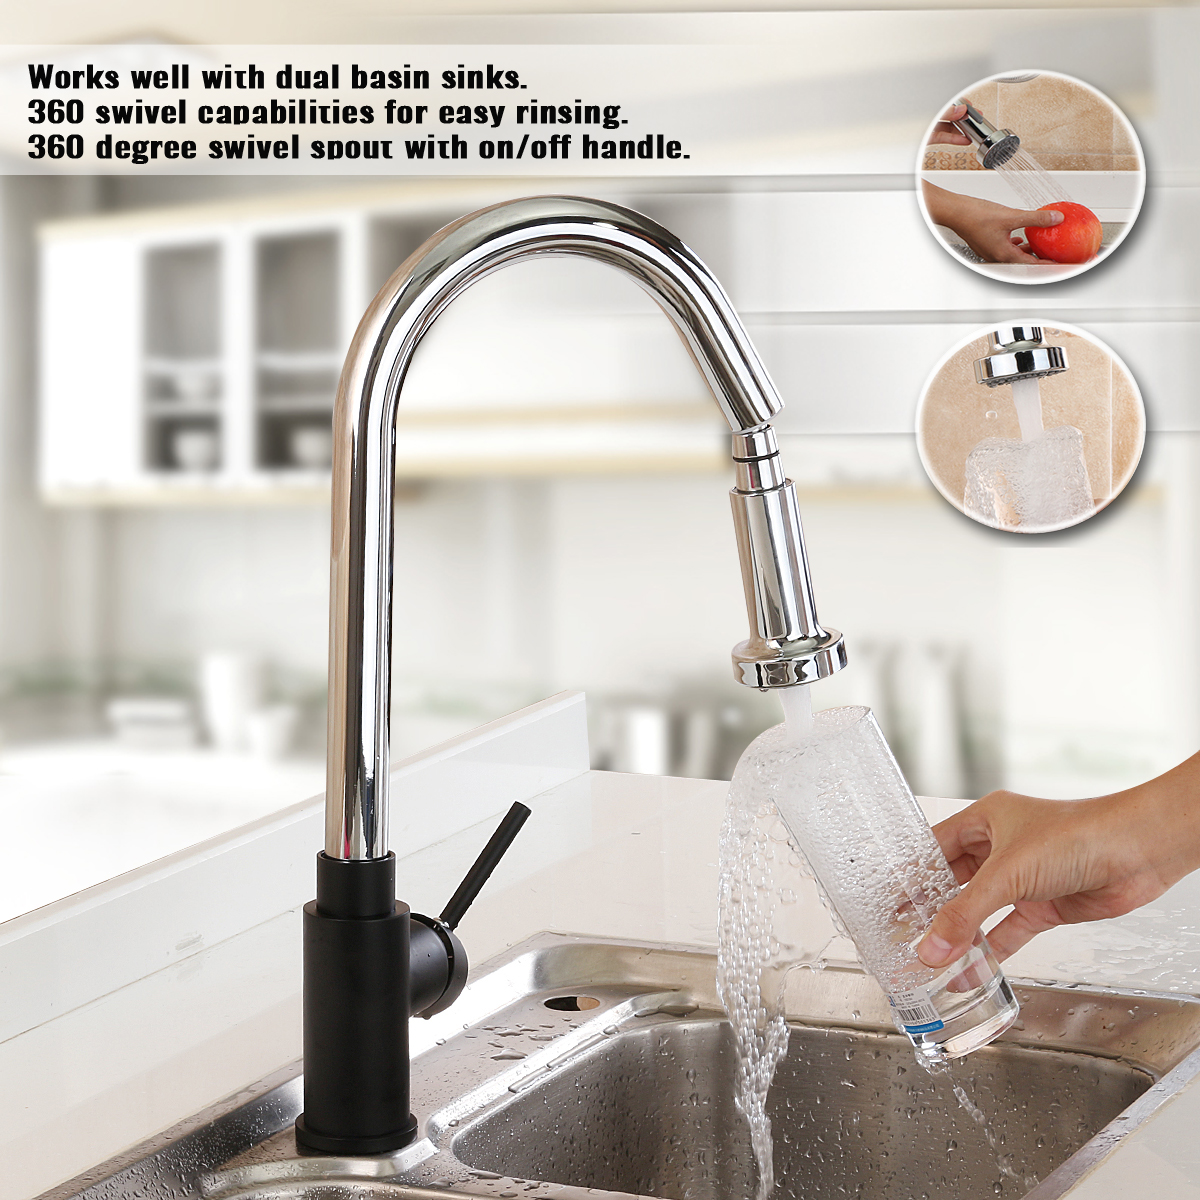 Chrome Black Crane Kitchen Faucet Mixer Pull Out Kitchen Tap 360 Rotate Copper Sink Mixer Tap Hot and Cold Water Single Handle 360 rotate copper chrome swivel kitchen faucet mixer cold and hot silver single hole handle kitchen water tap